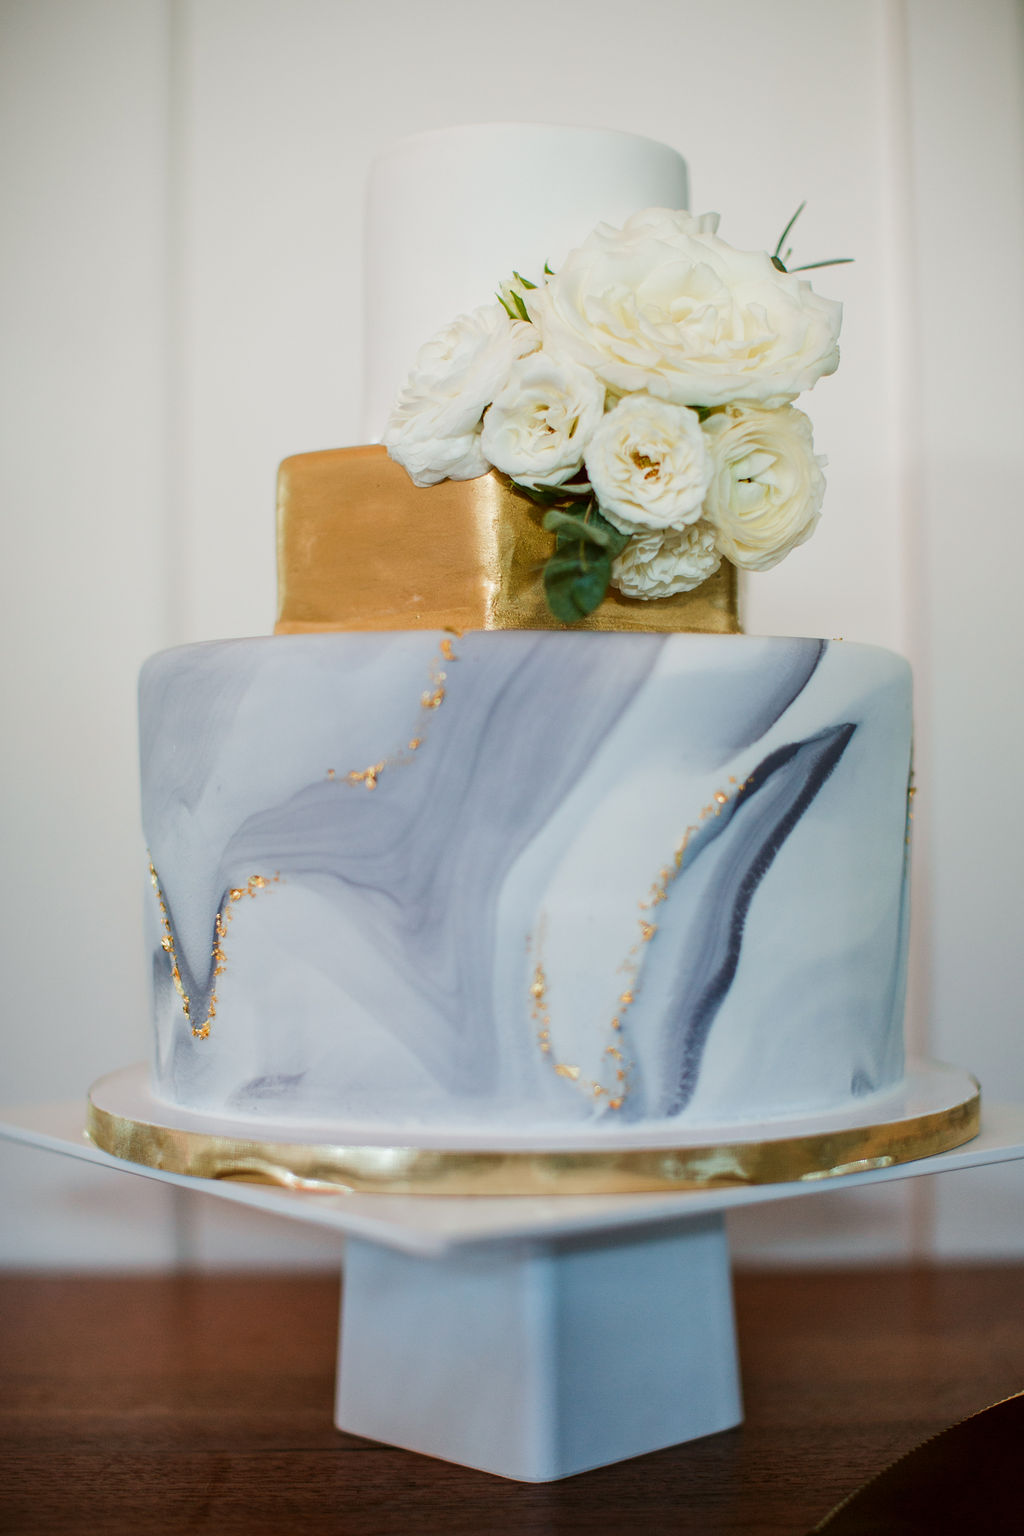 Marbled cake with all white flowers and touches of greenery